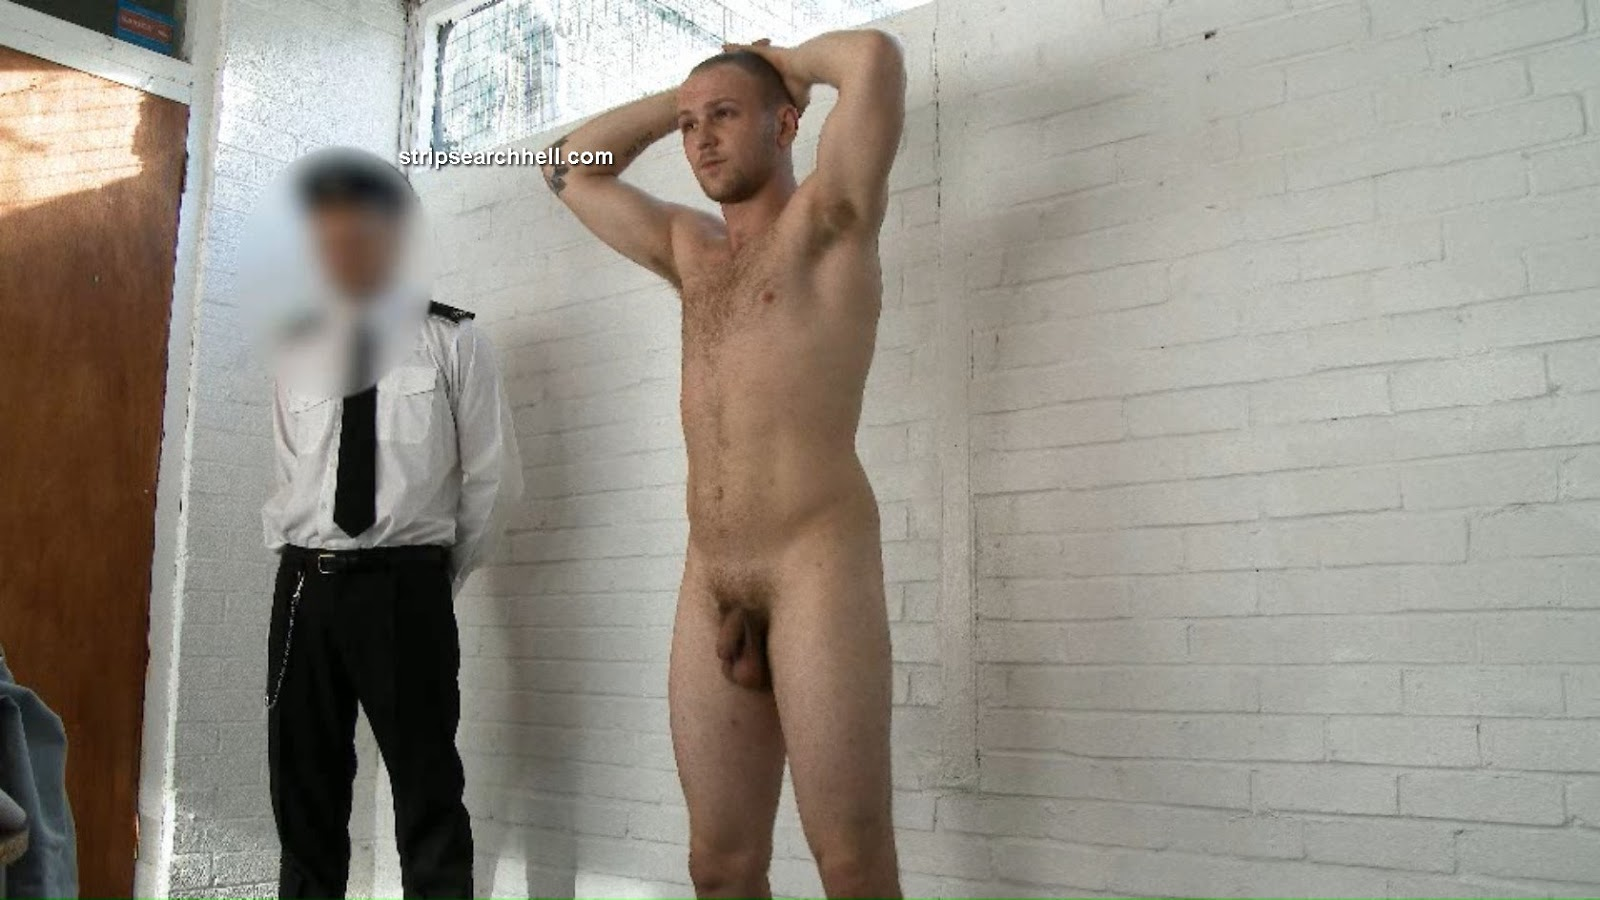 Men Stripped Public Associates And Naked Guys In Outdoor Mud Gay In This Weeks Out In